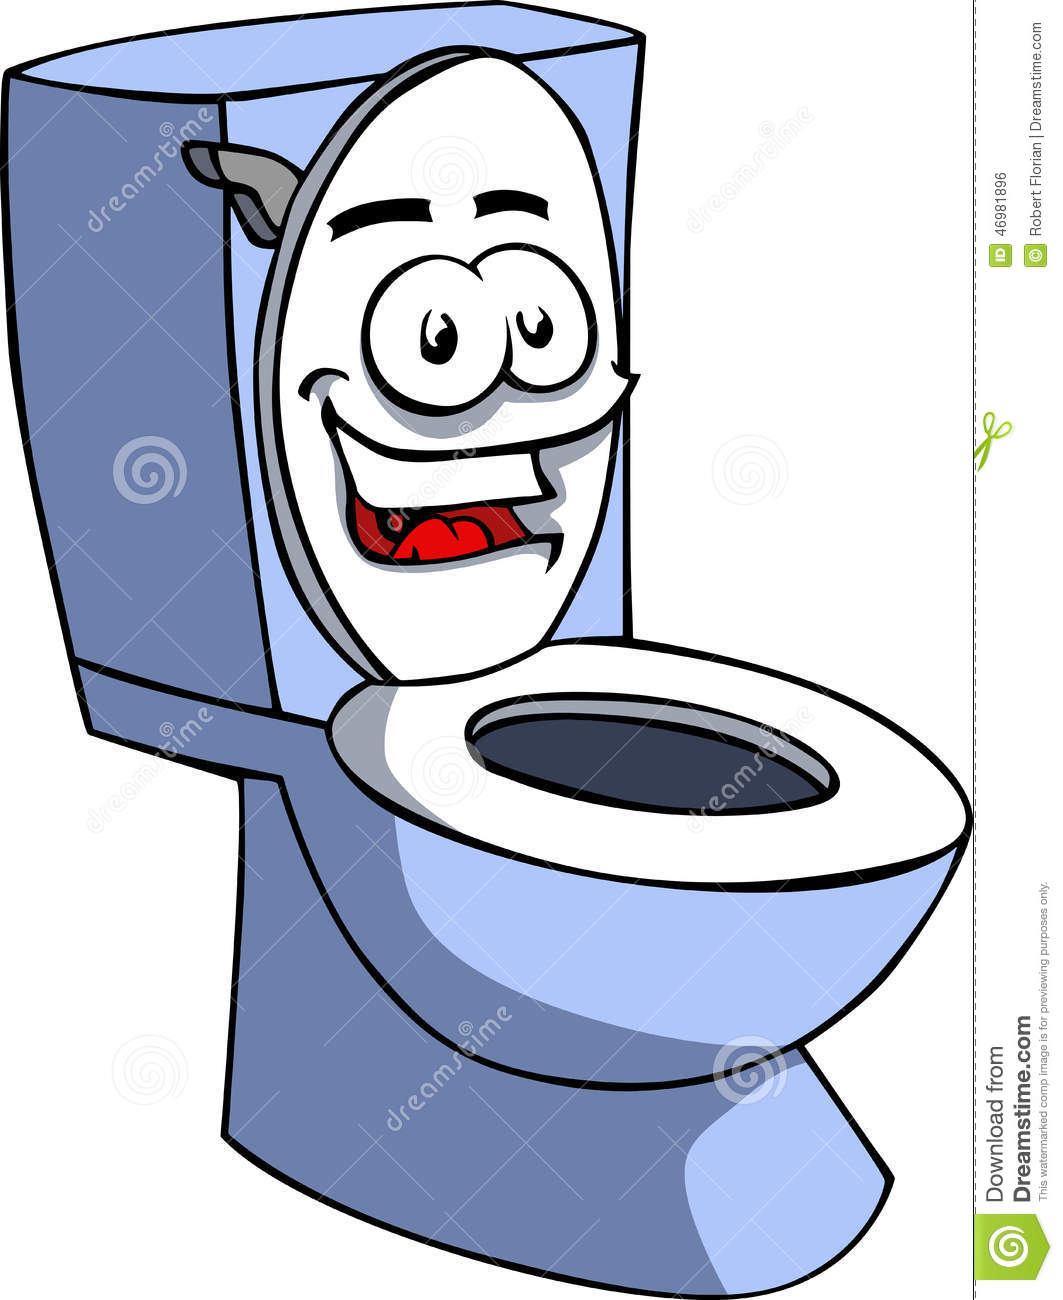 Smiling Toilet Stock Vector - Image: 46981896